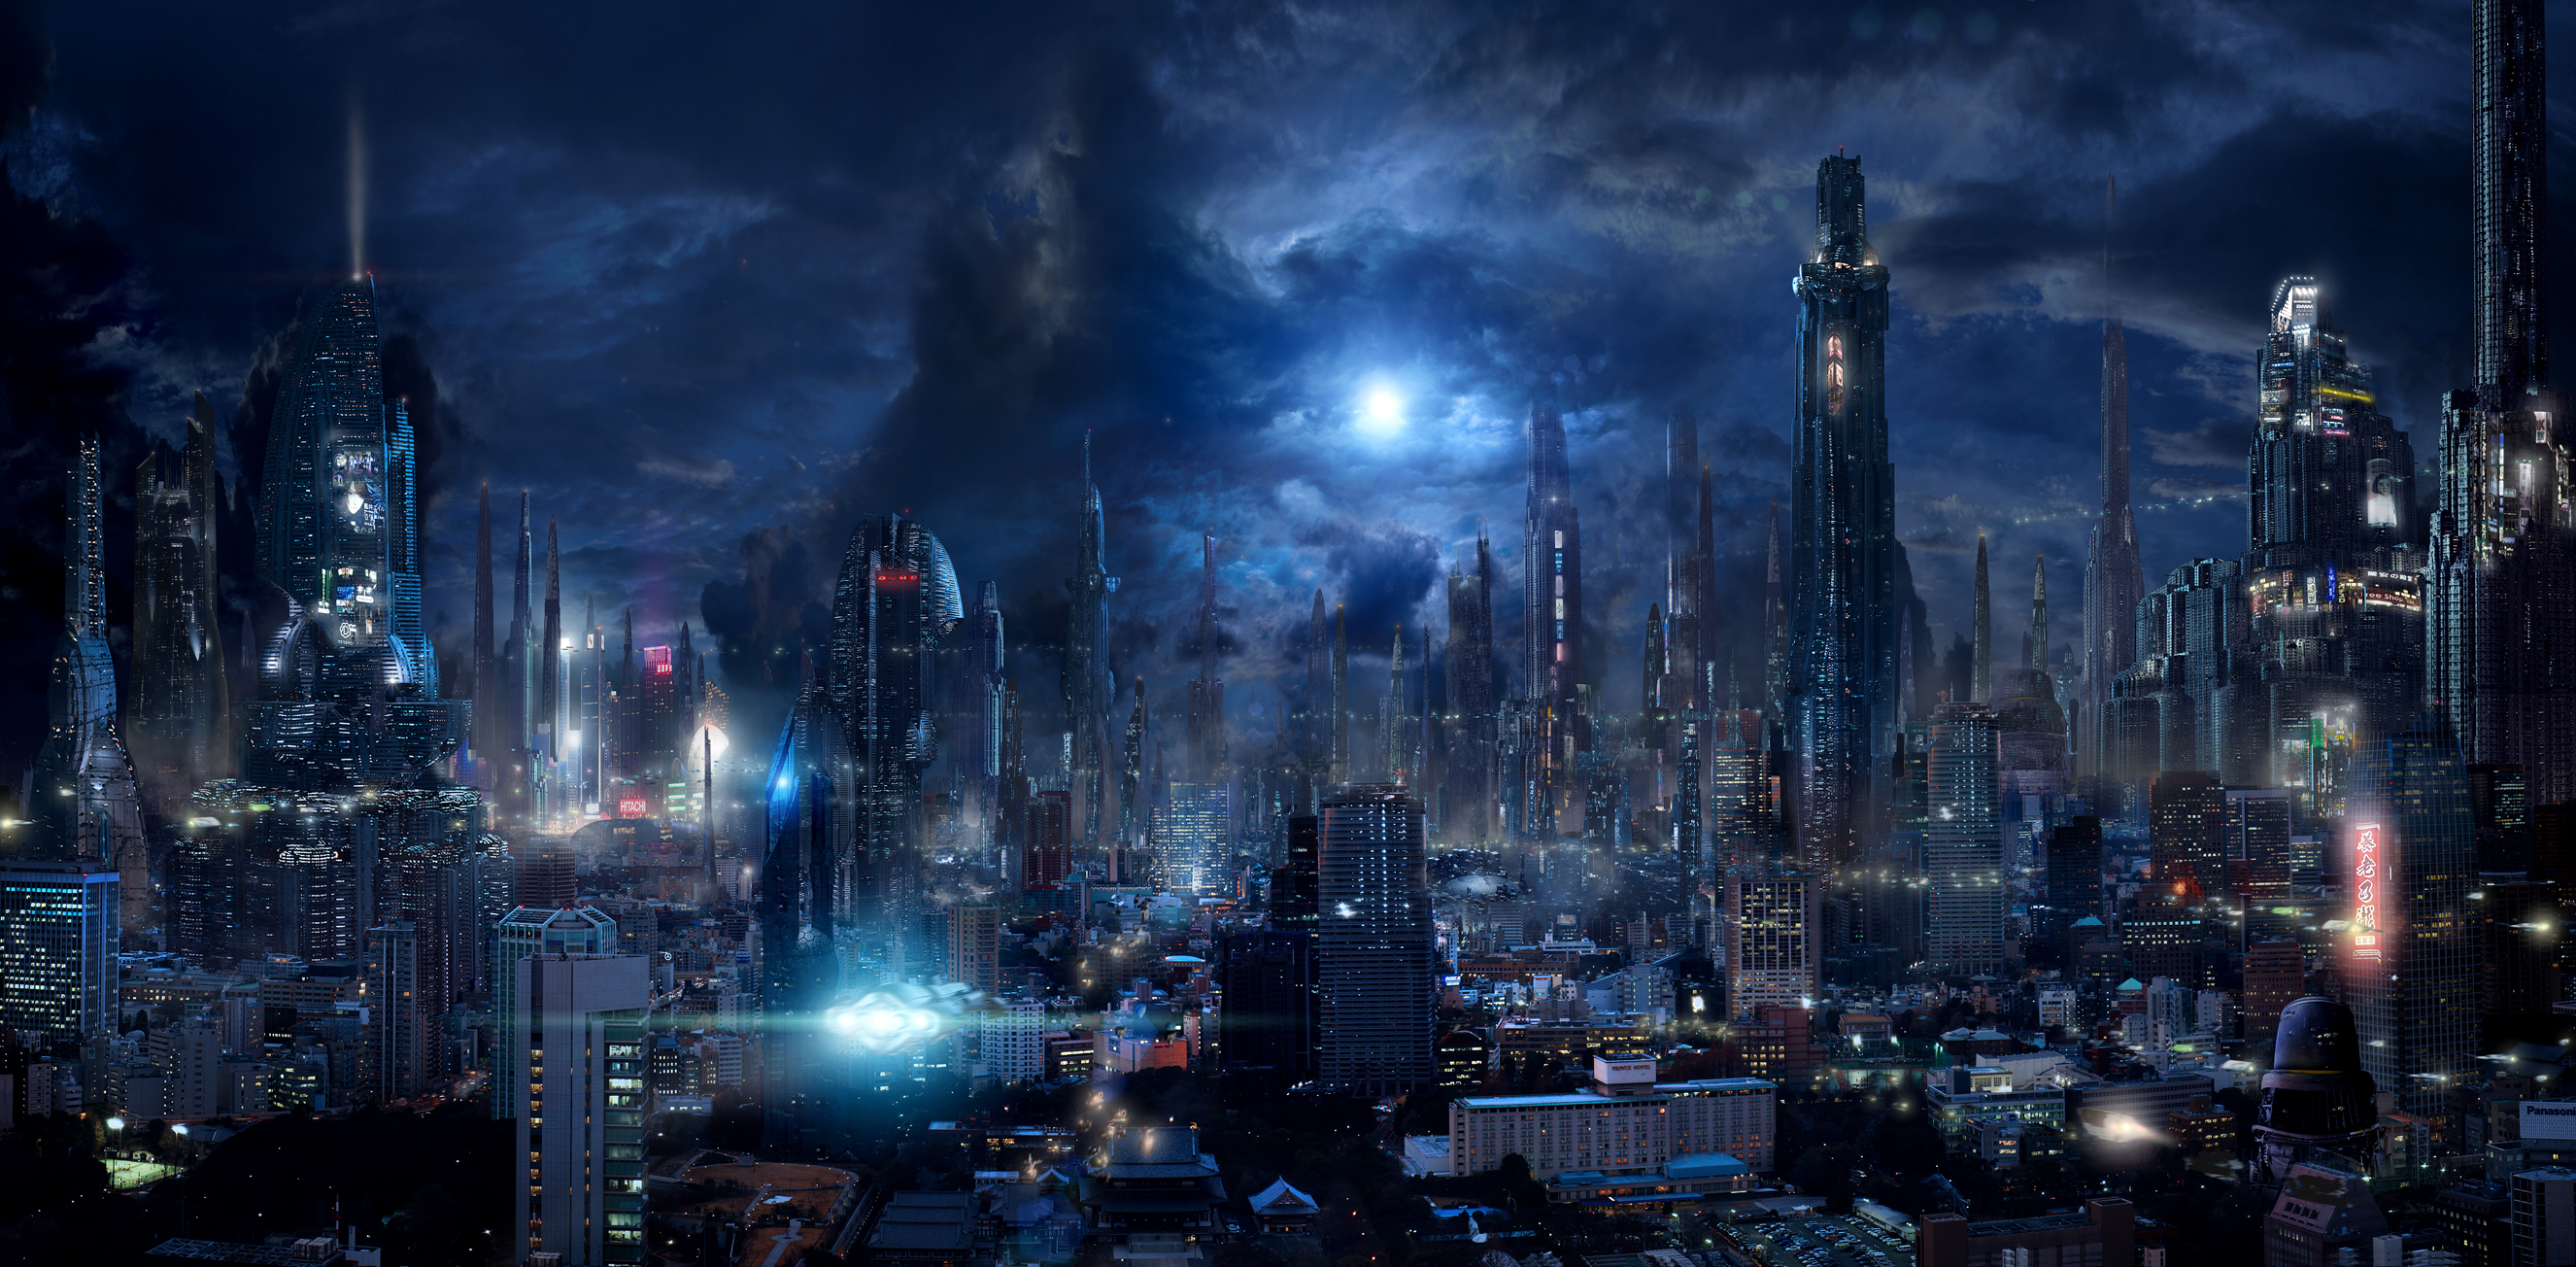 Future City 9 by rich35211 on DeviantArt